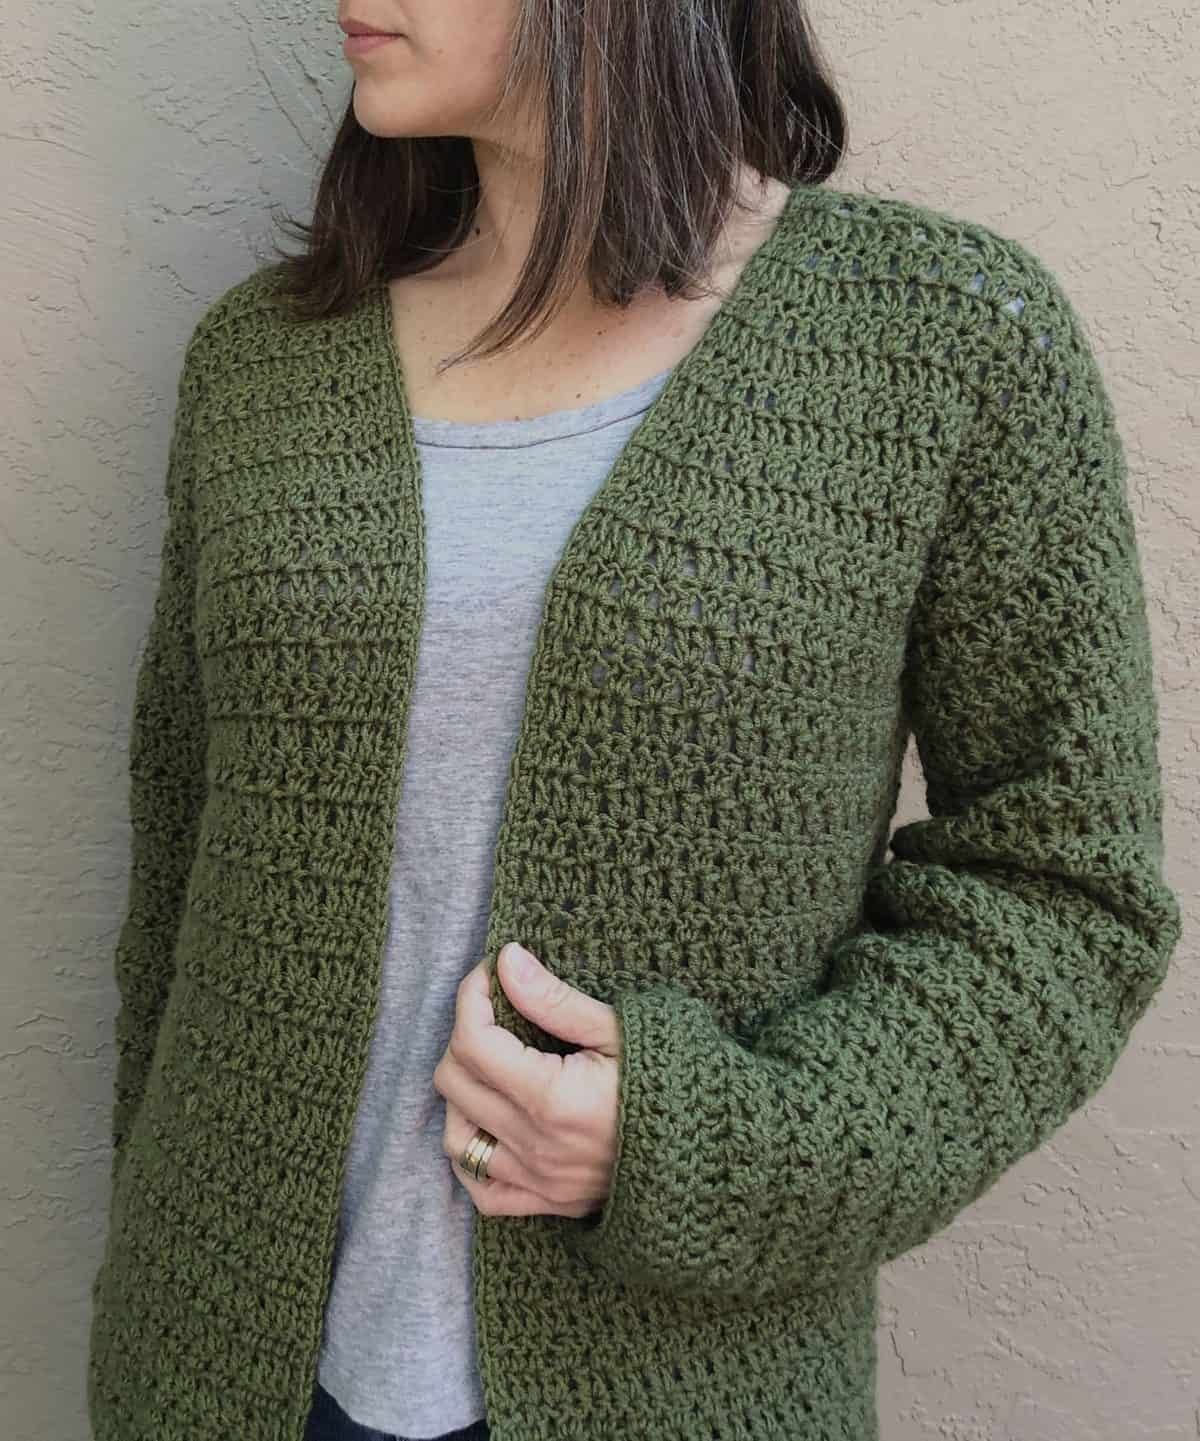 Picture of woman in green crochet cardigan